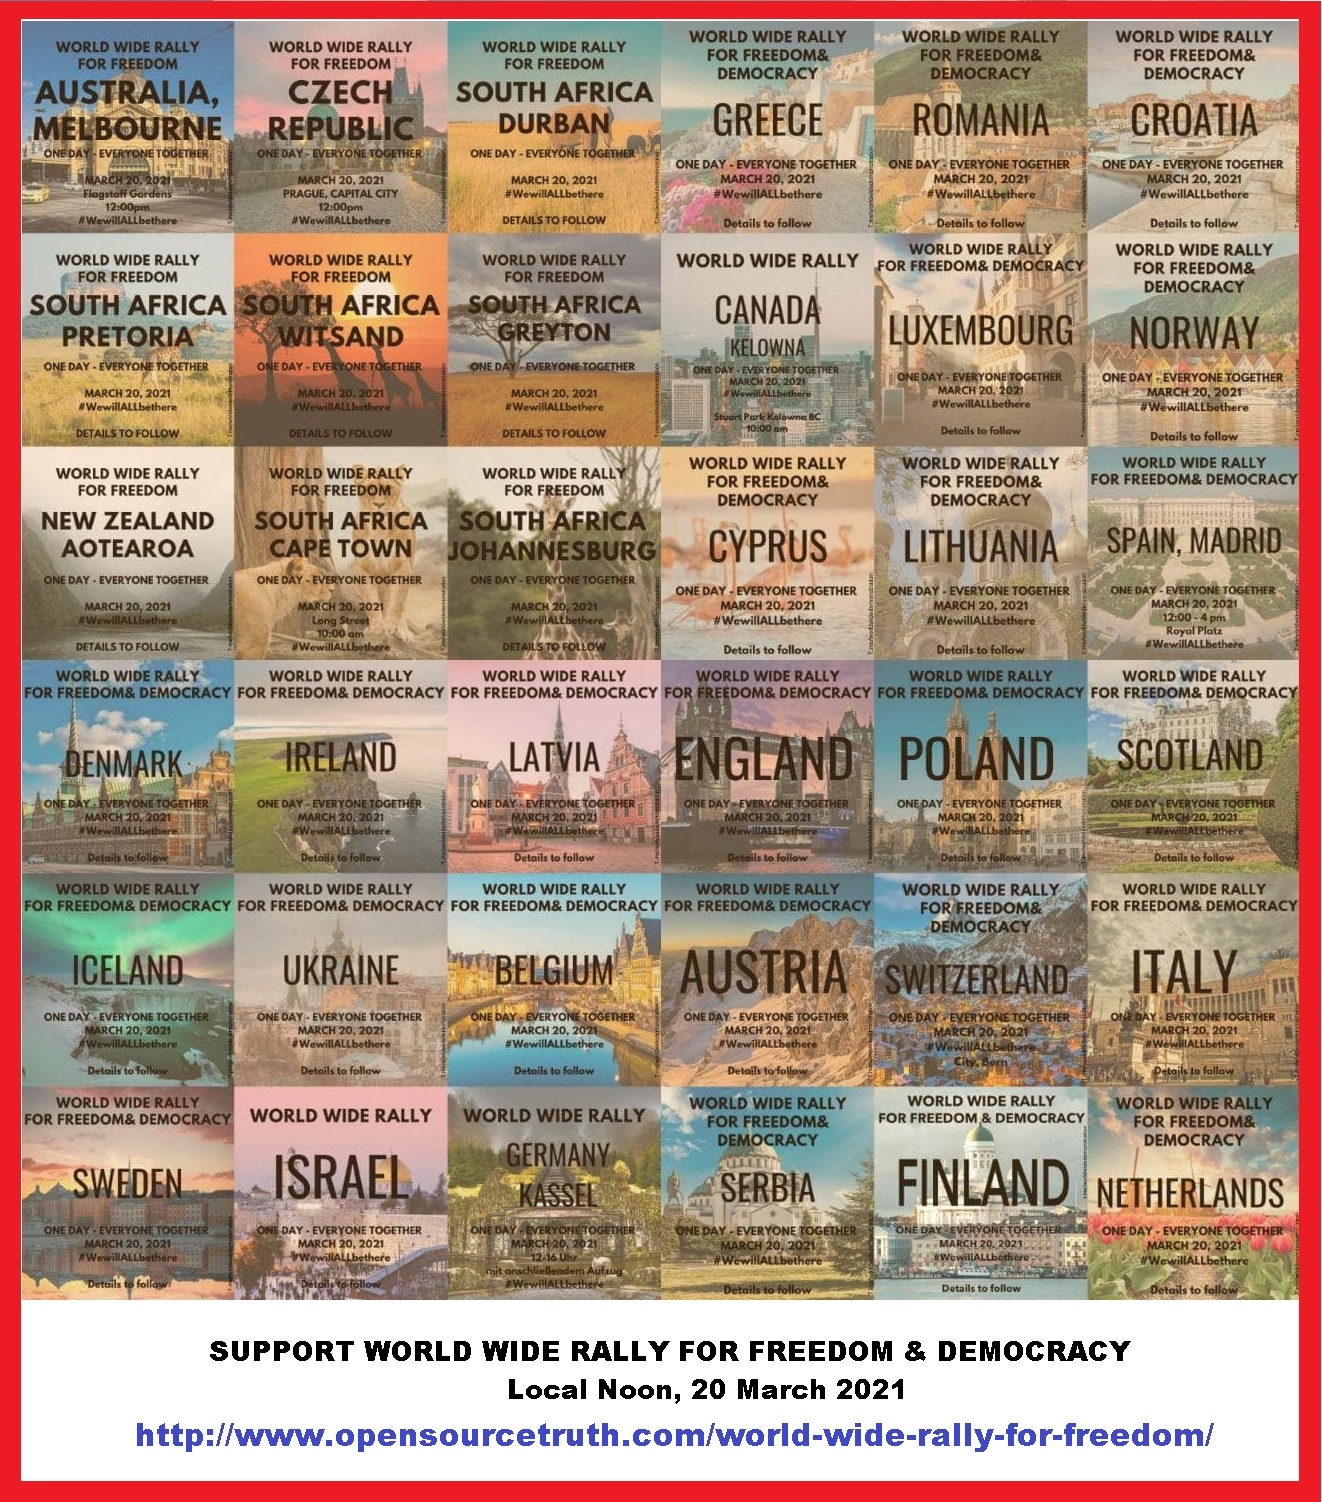 World Wide Rally for Freedom